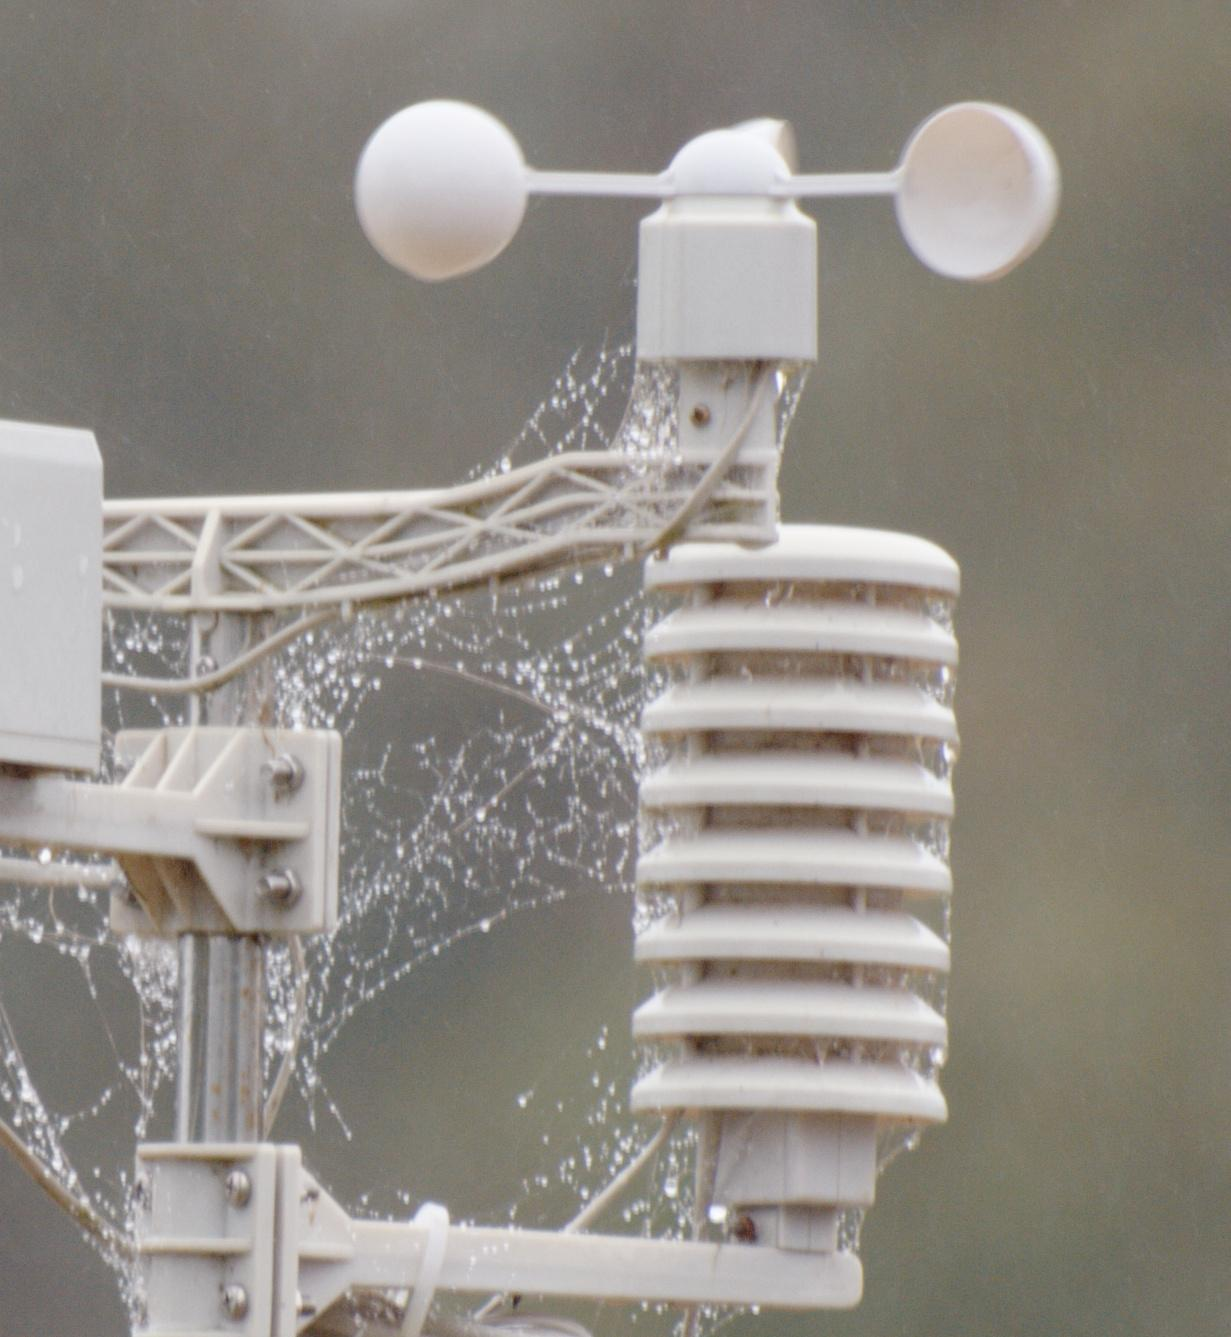 Weather-station-zuiko-unstabilized-4-detail-2.jpeg